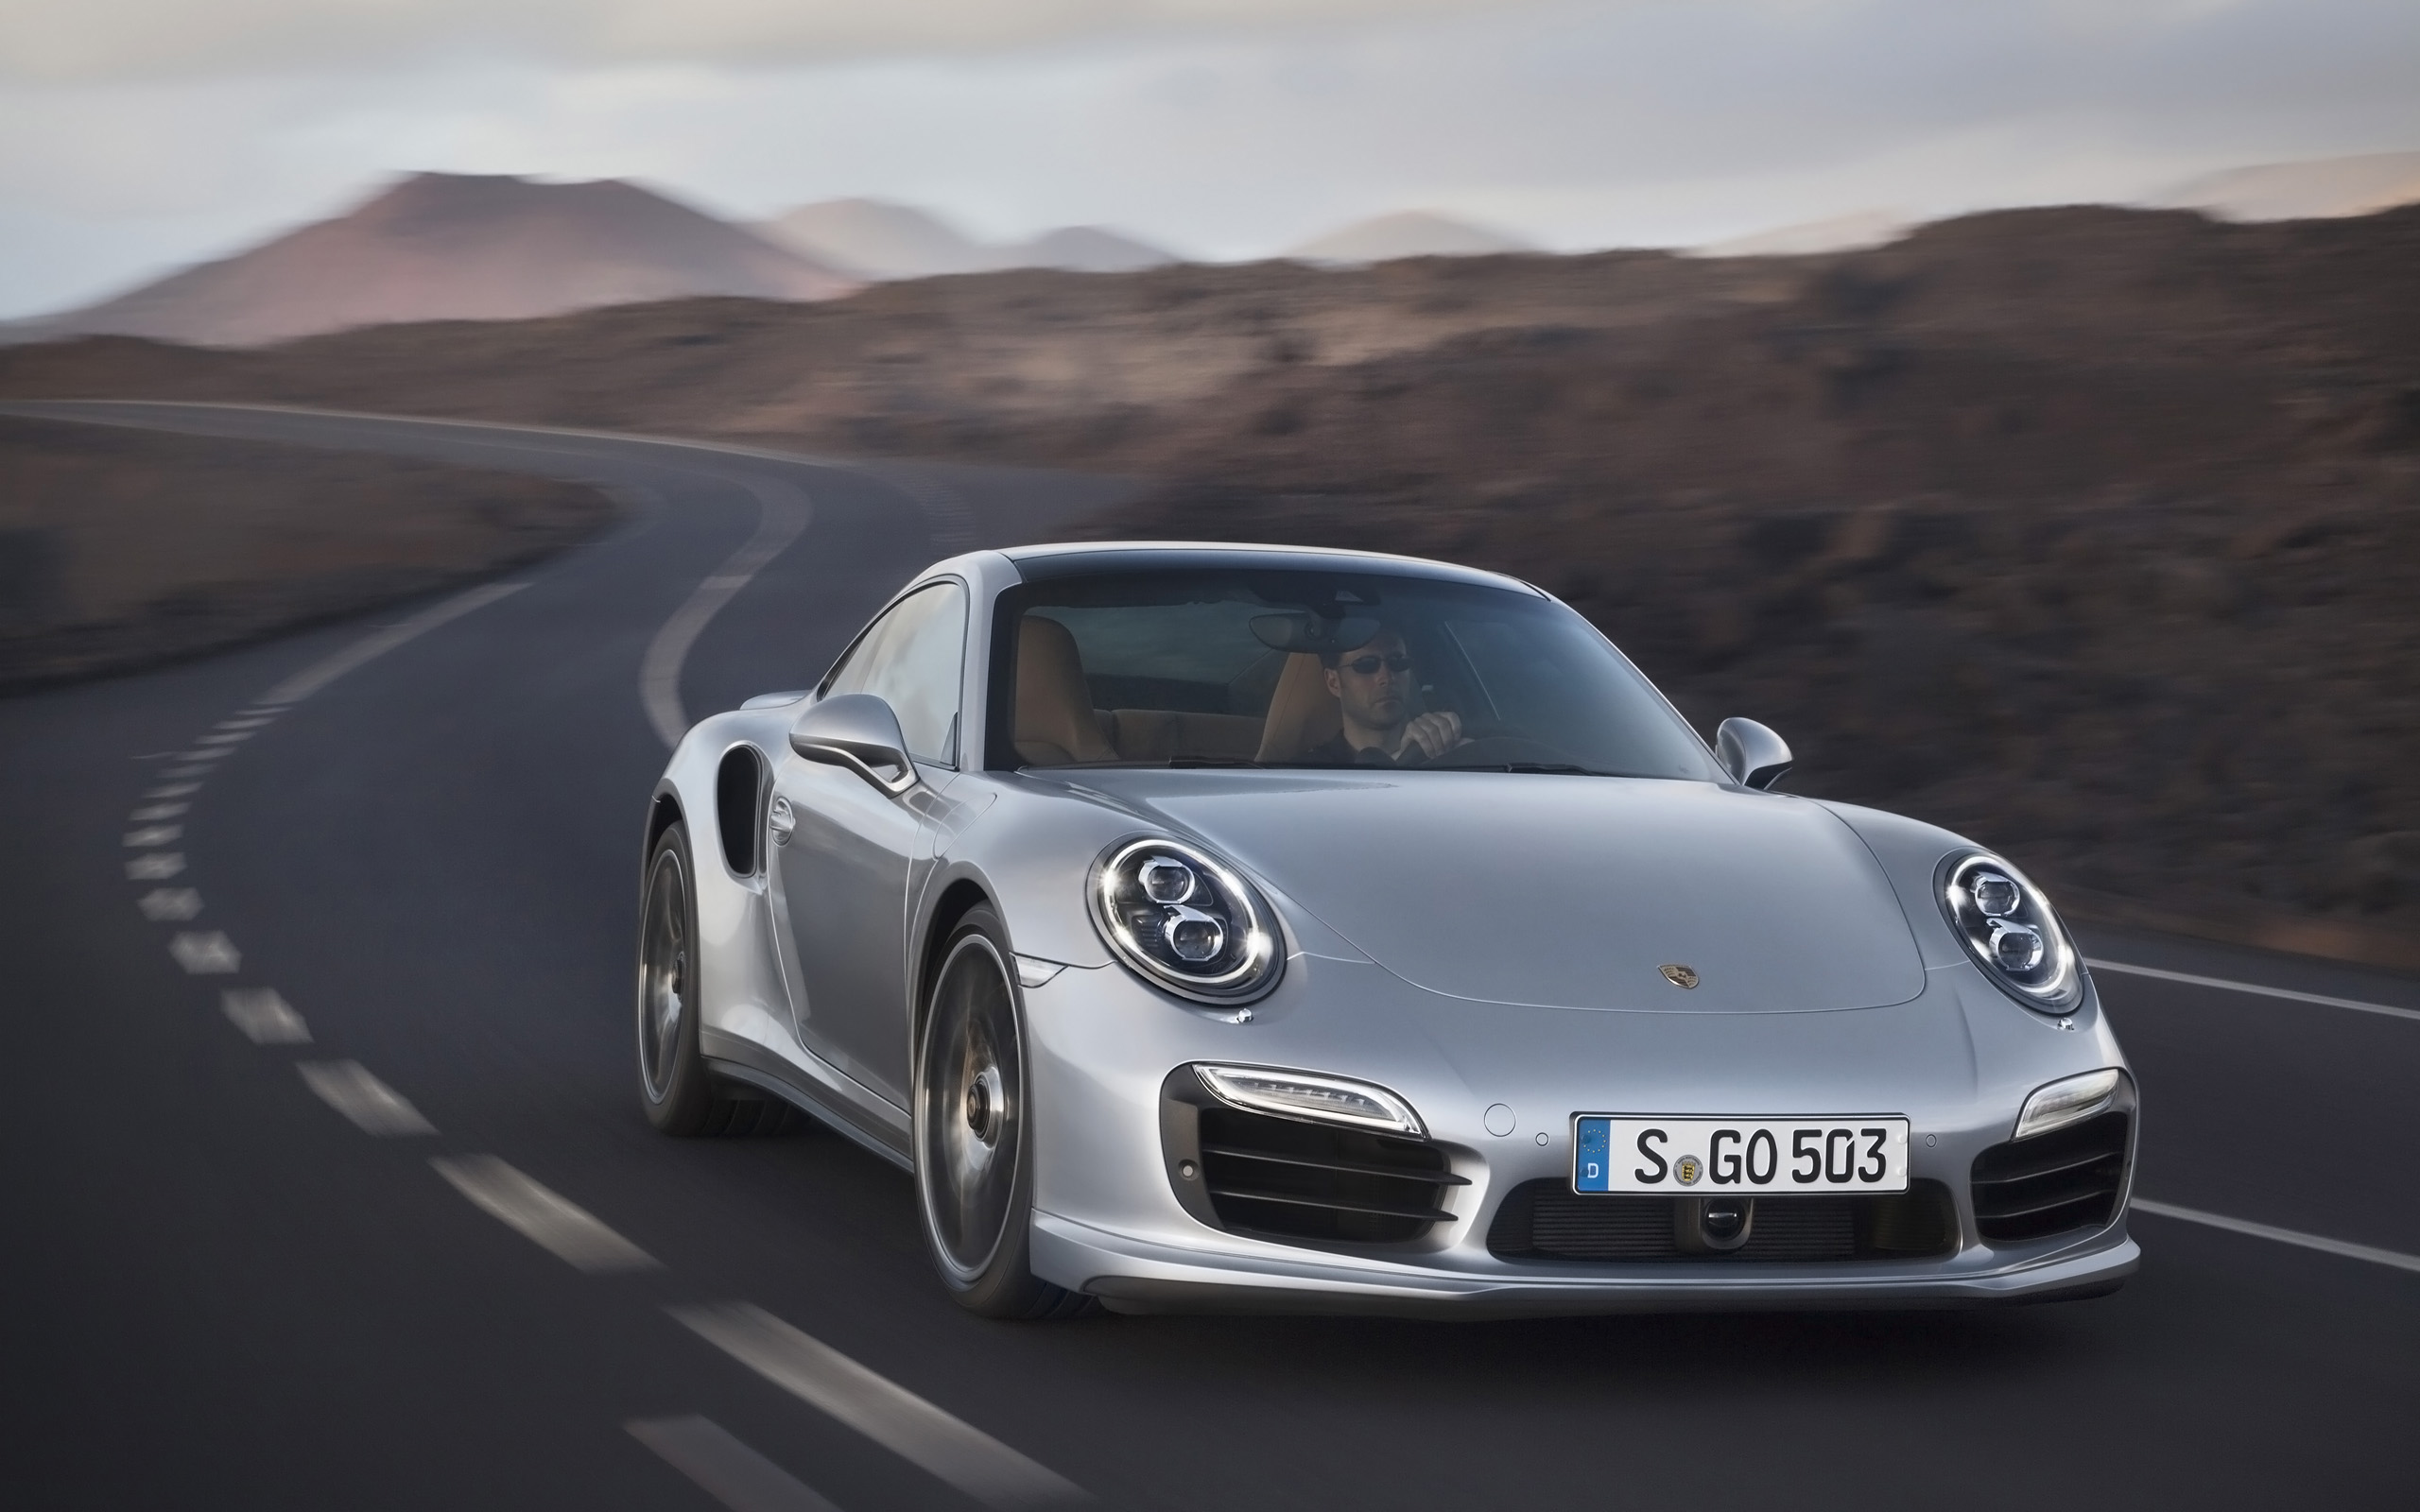 2013 porsche 911 turbo motion front wallpapers and stock photos - 2015 Porsche 911 Turbo Wallpaper